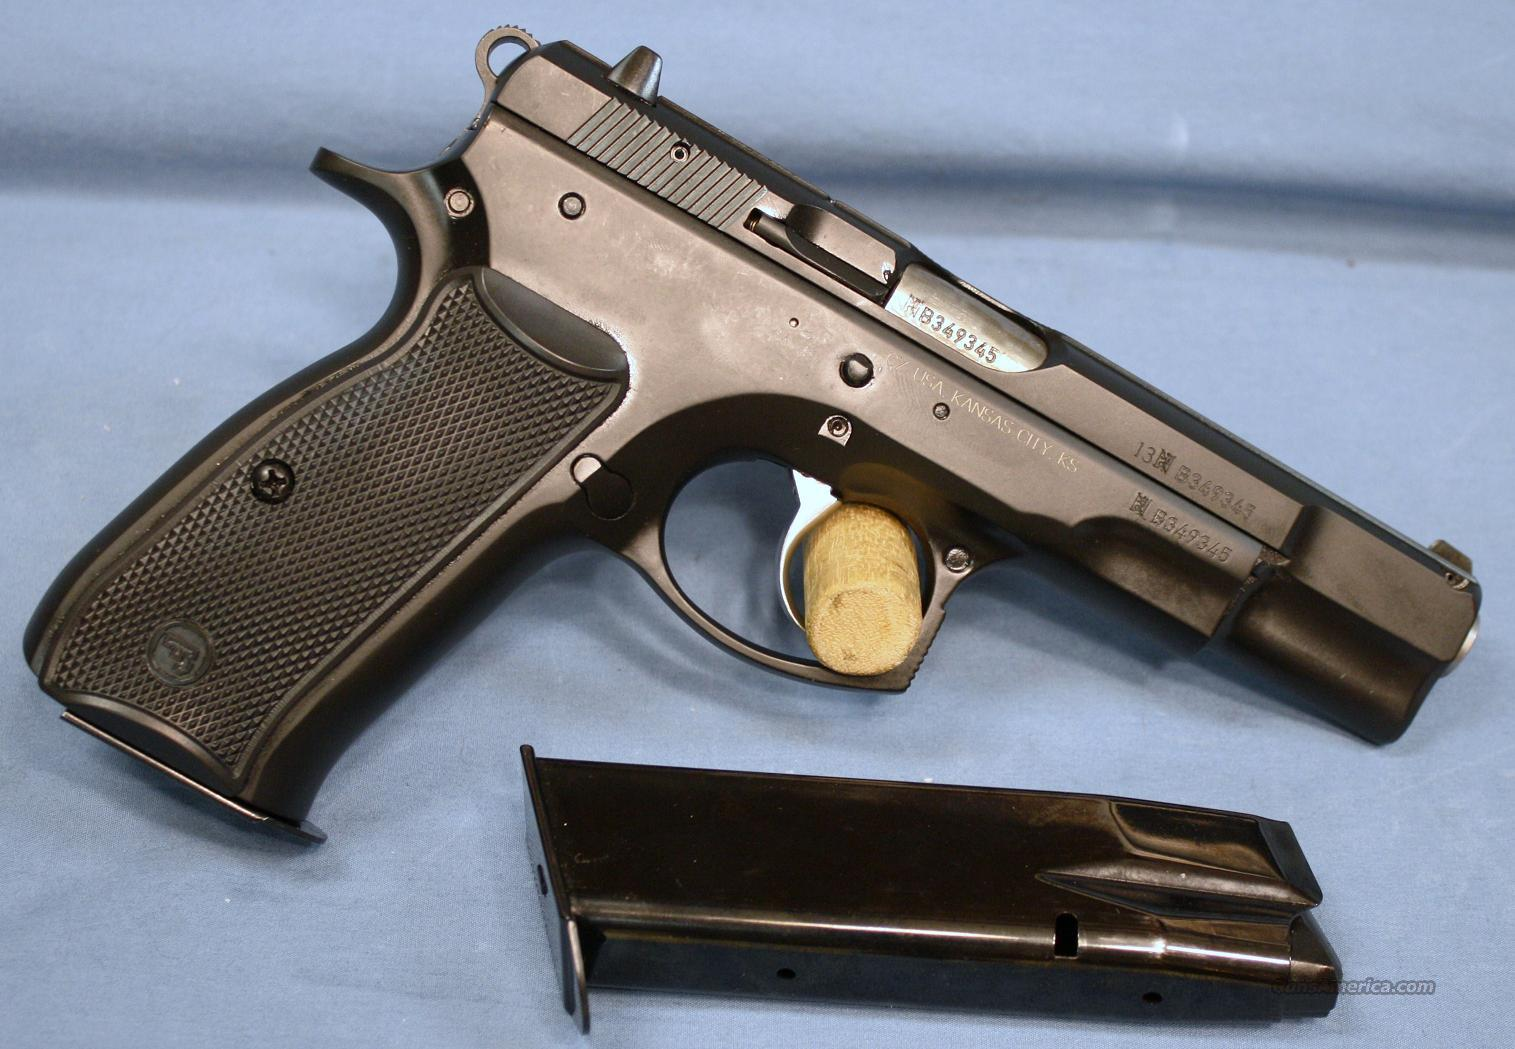 CZ USA CZ 75 B Semi-Automatic Pistol 9mm  Guns > Pistols > CZ Pistols